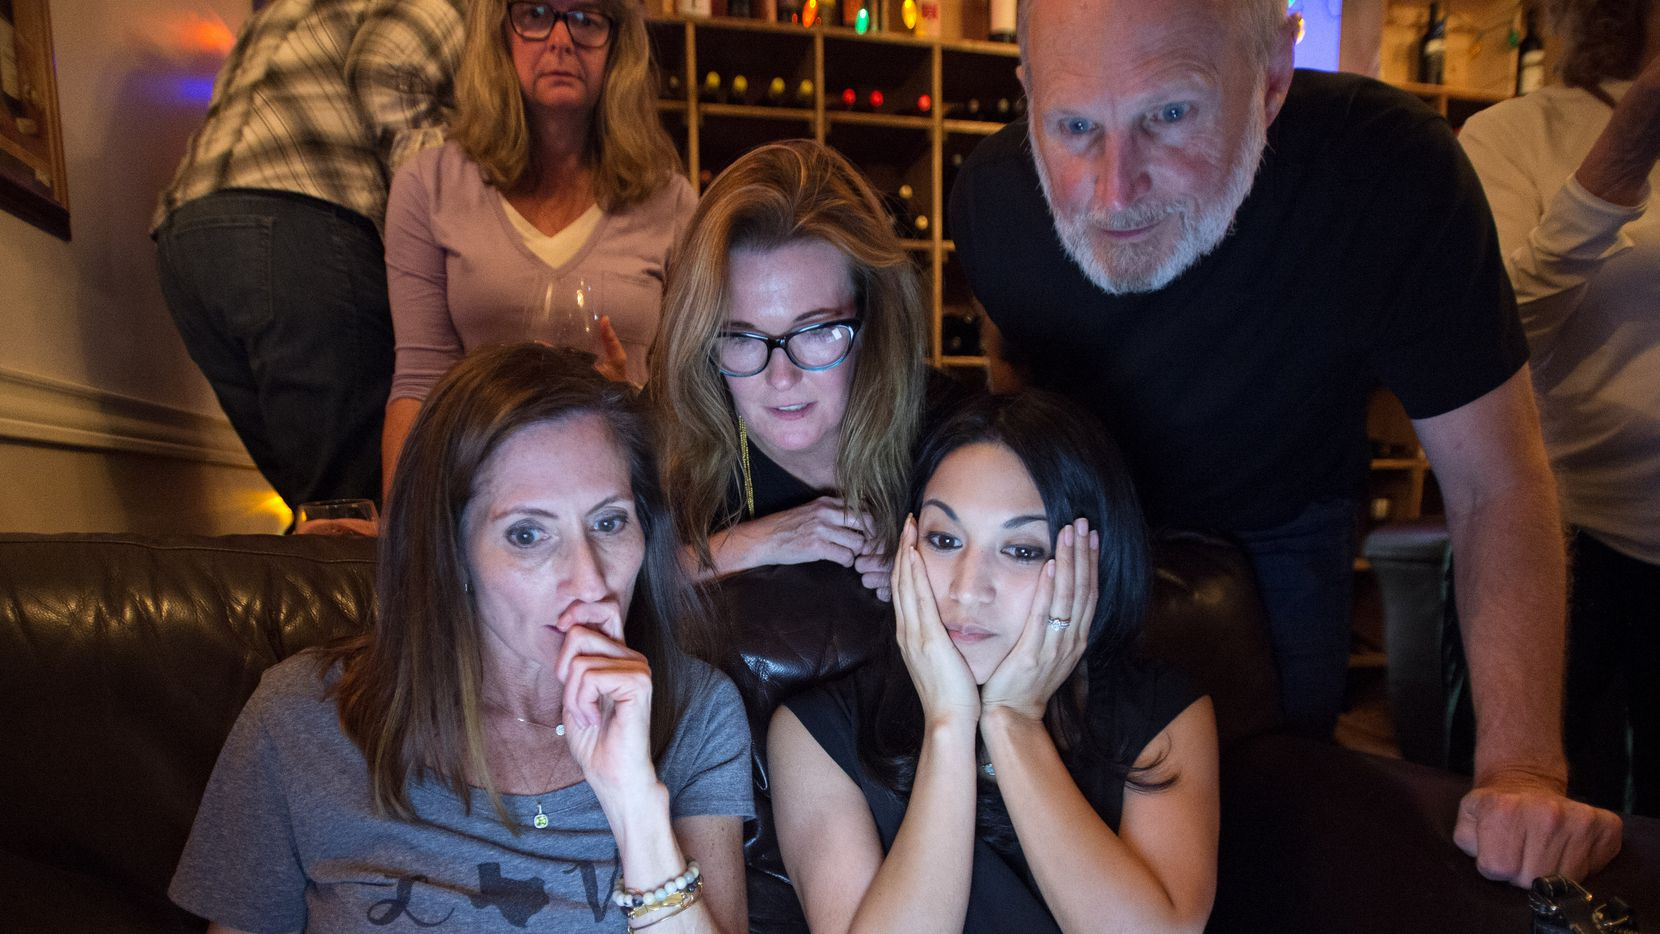 Dallas ISD District 2 board of trustee candidate Lori Kirkpatrick (front left), campaign volunteer Diana Carranza, (front right), campaign manager Trish Watson (center, behind couch), and campaign volunteer Tom Ervin monitor election results at a watch party Saturday, May 6, 2017 at Bodega Wine Bar in Dallas.